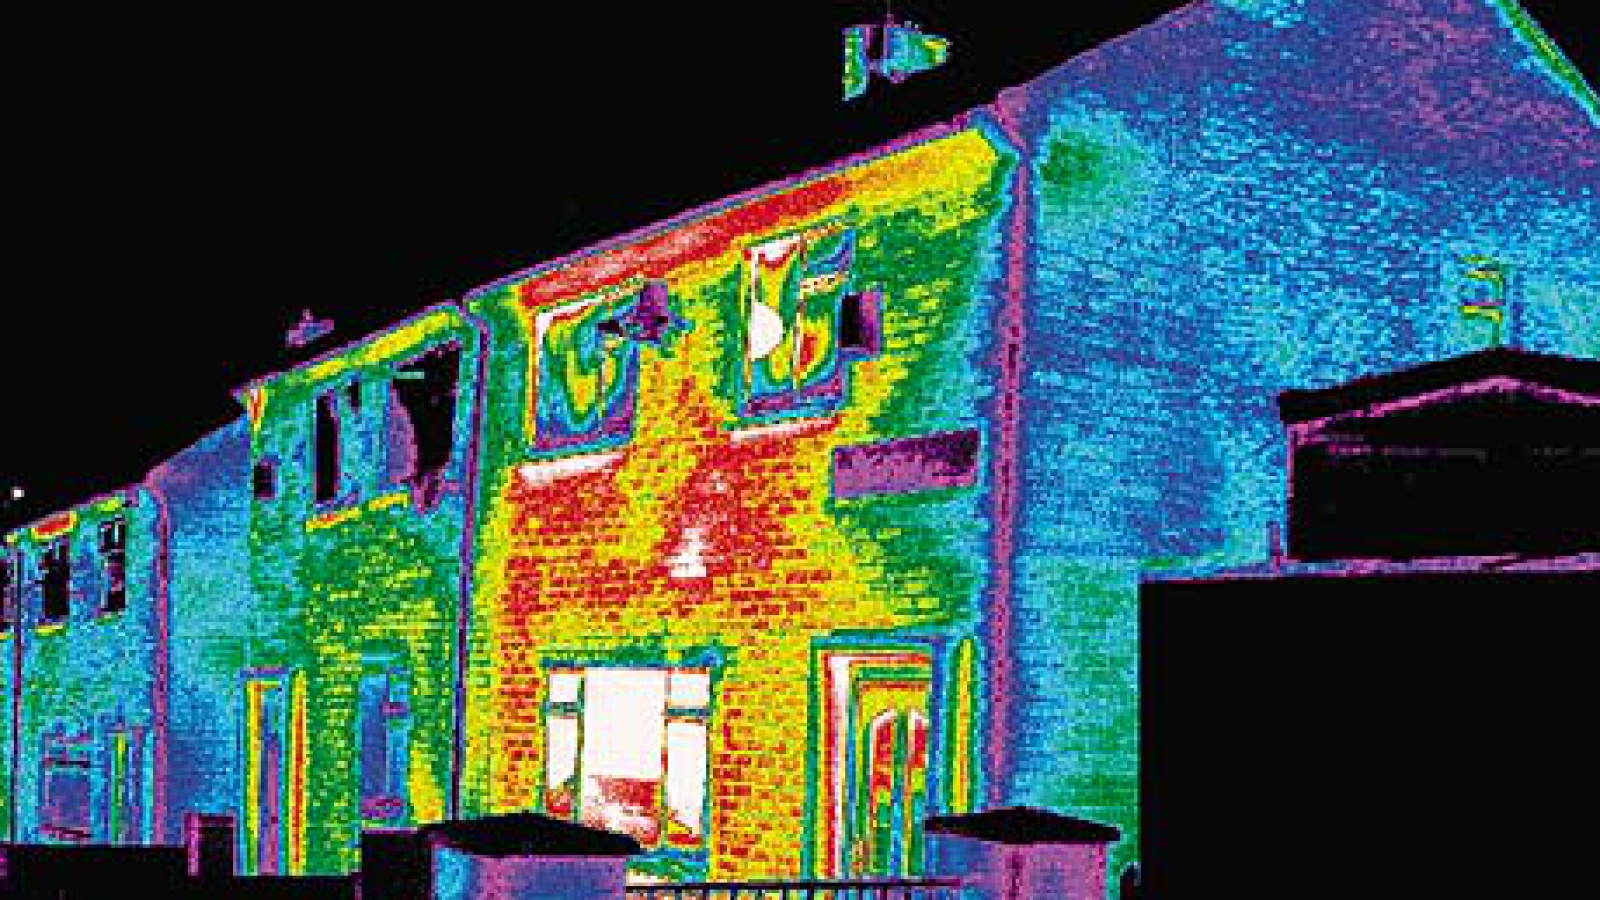 Thermal-imaging-shows-hou-001